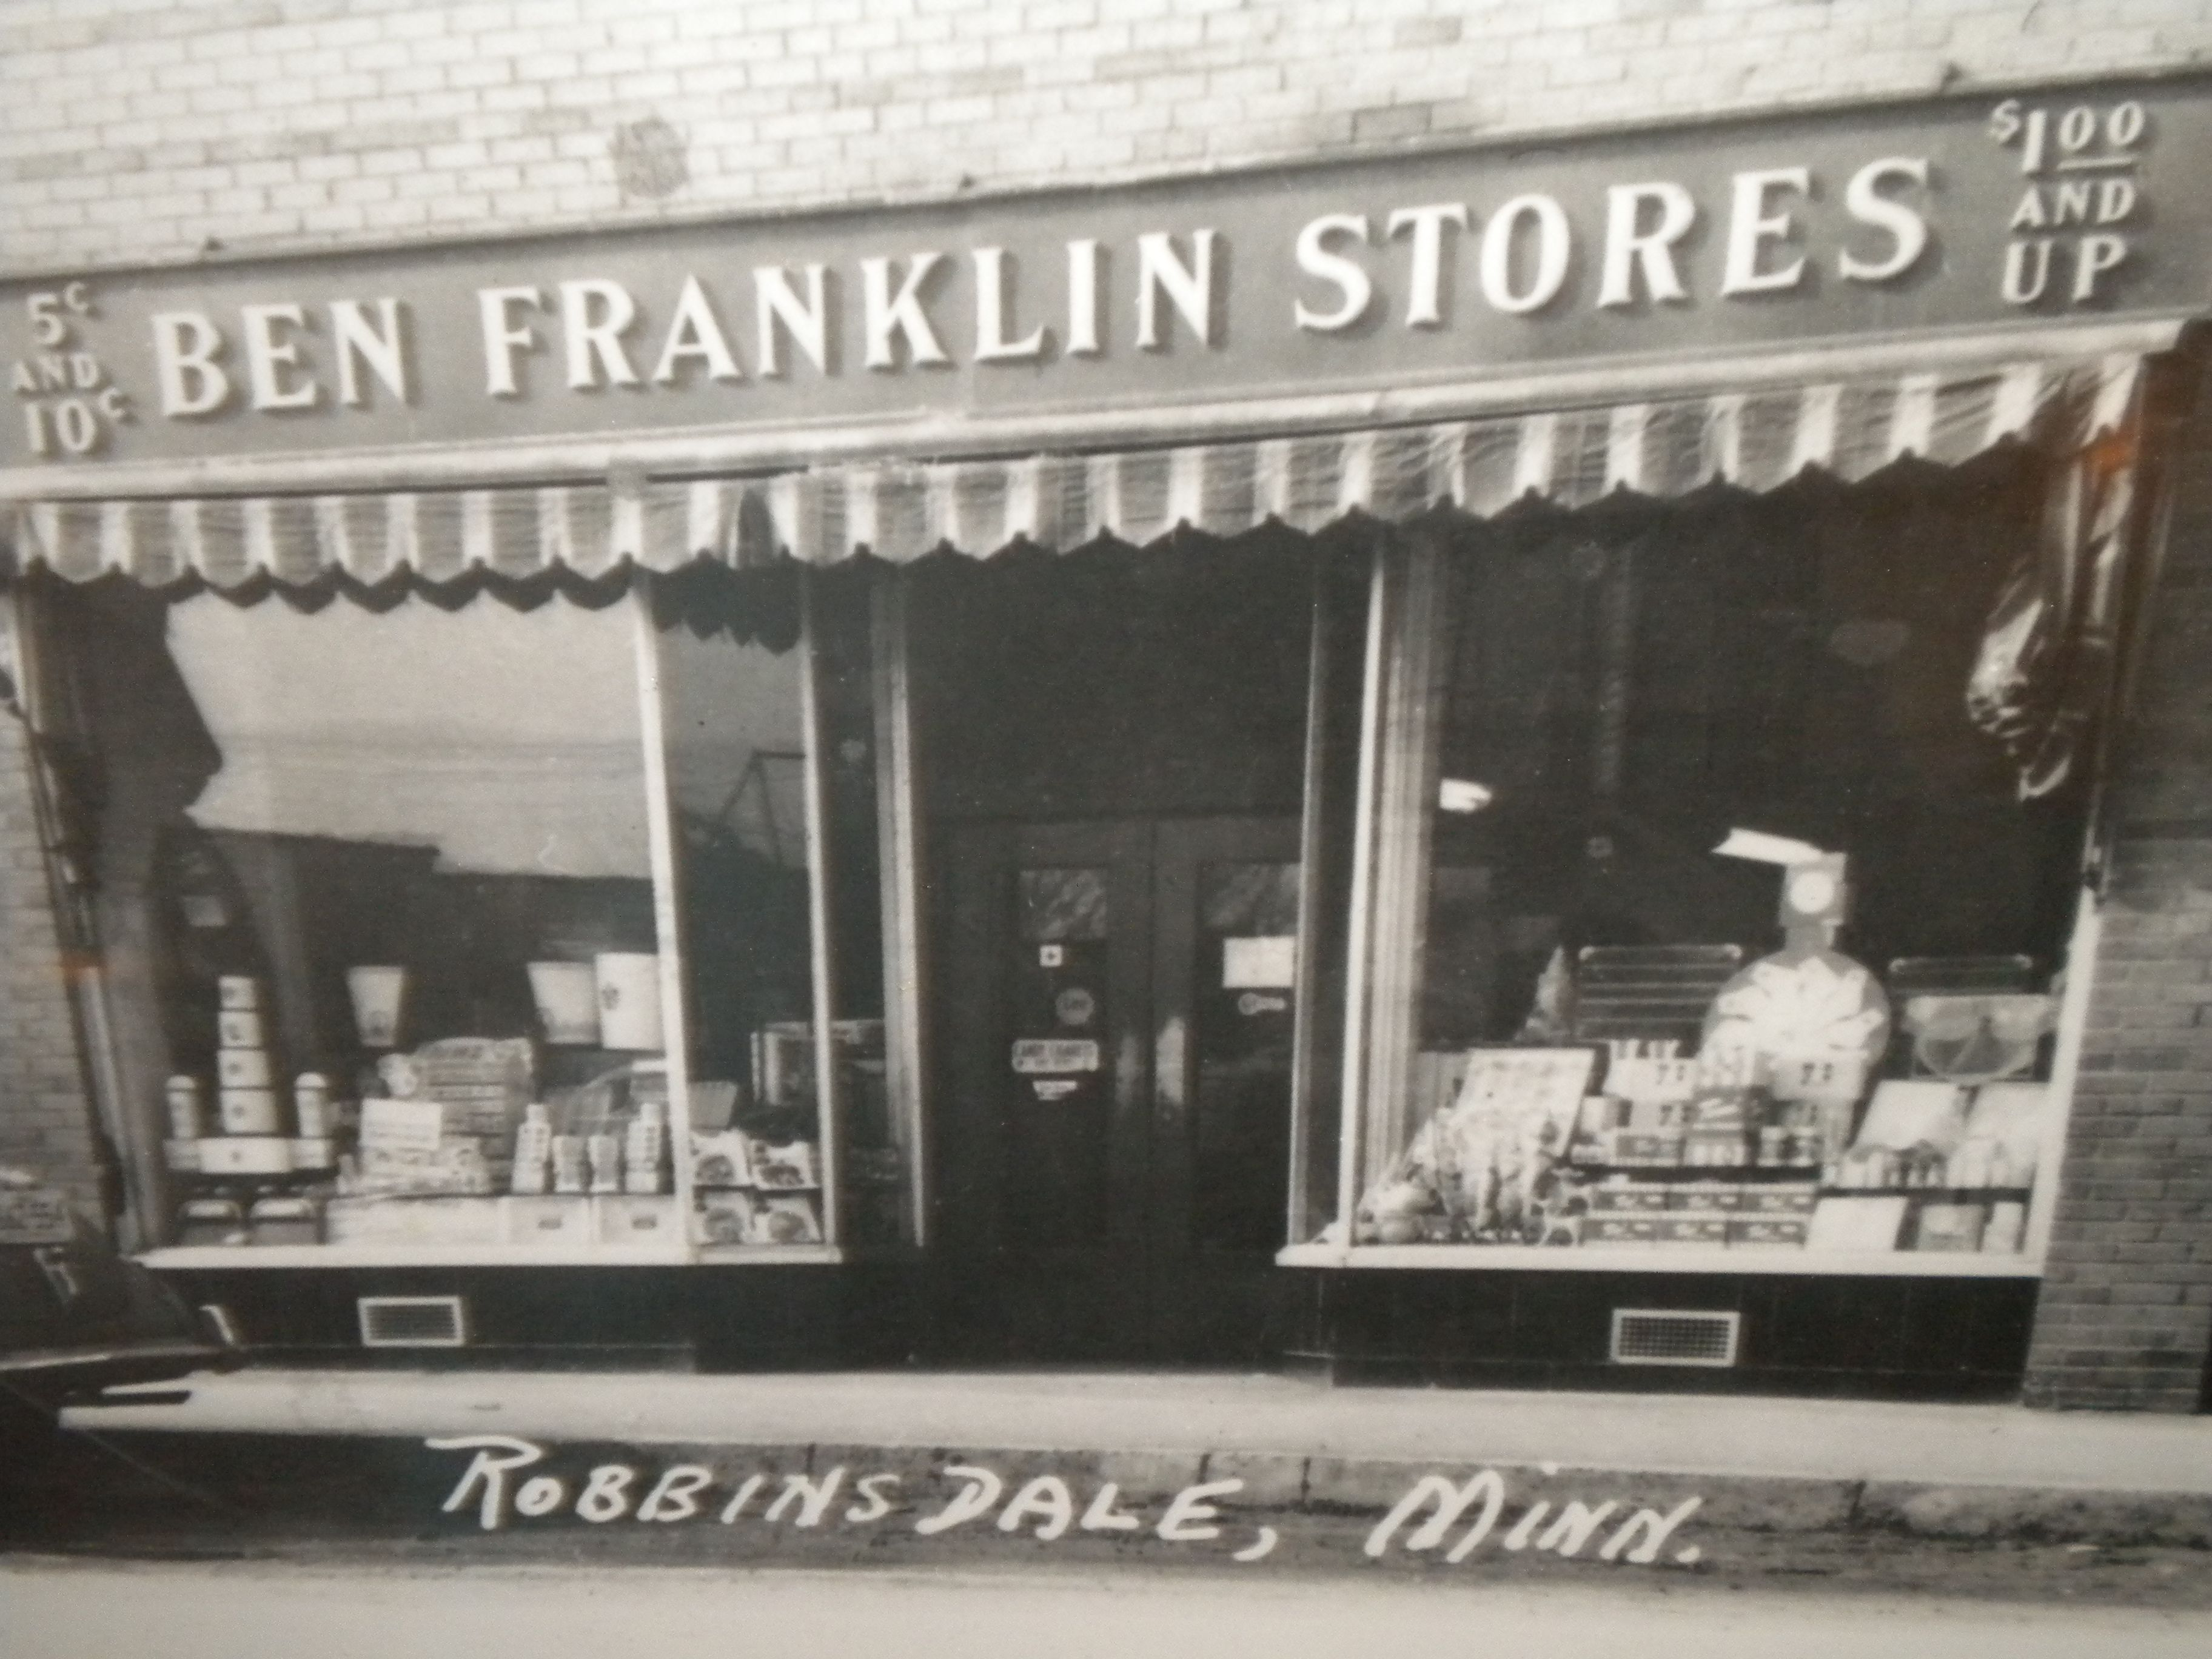 My Mom worked in Ben Franklin 5 & 10 for many years in Pompton Lakes,